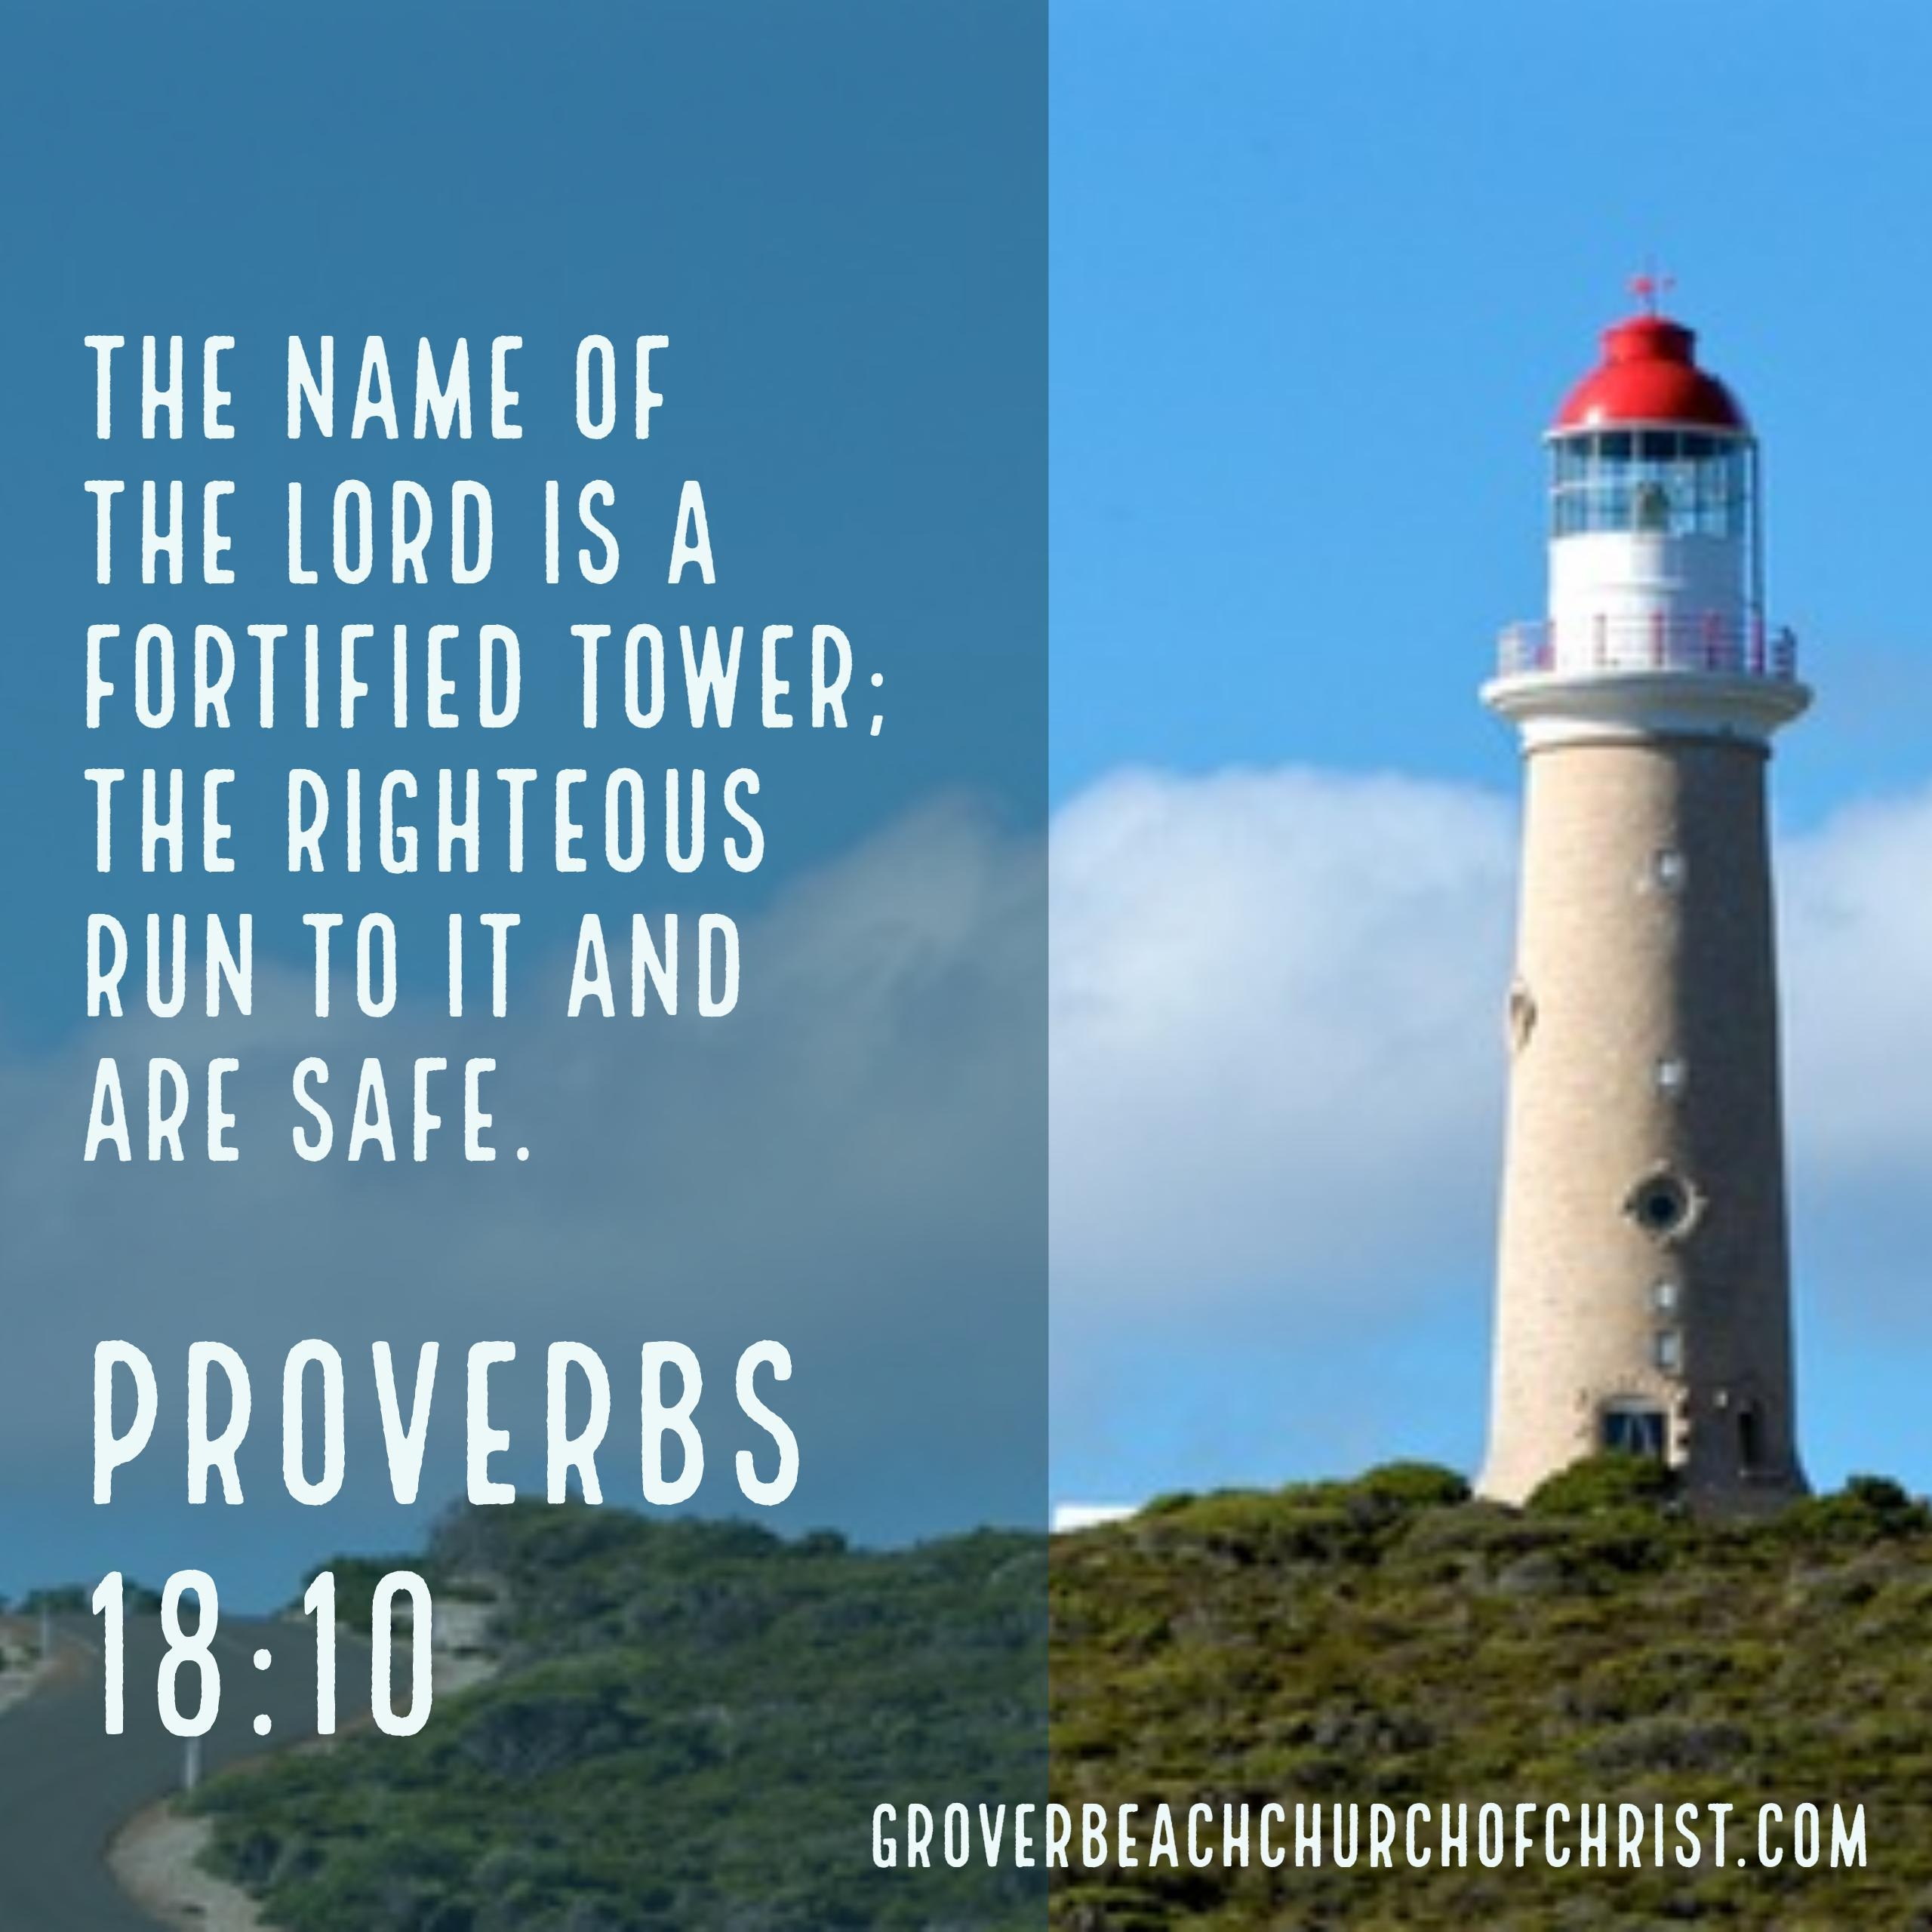 Proverbs 18:10 The name of the Lord is a fortified tower